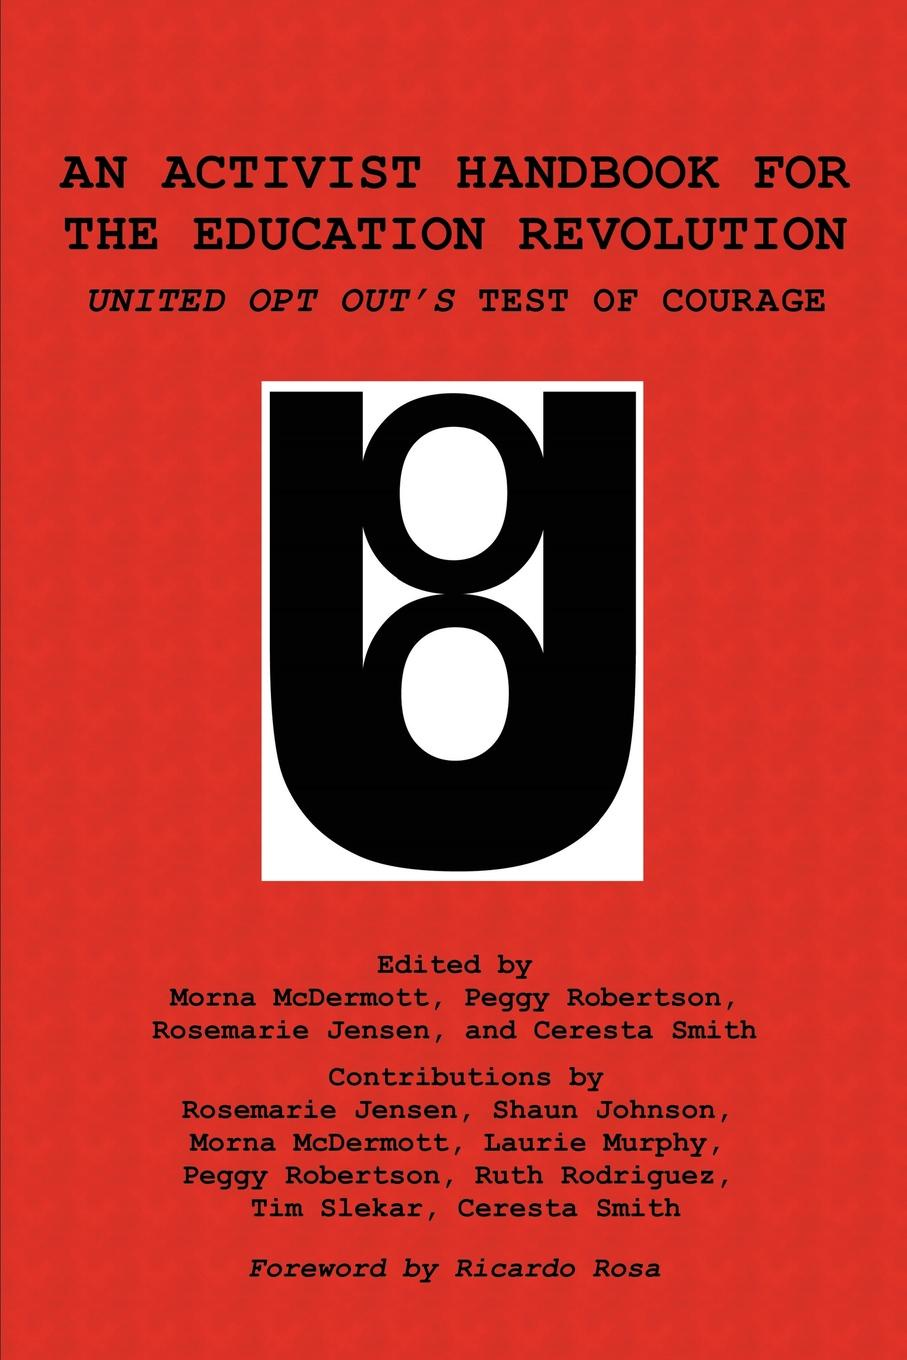 An Activist Handbook for the Education Revolution. United Opt Out.s Test of Courage an activist handbook for the education revolution united opt out s test of courage